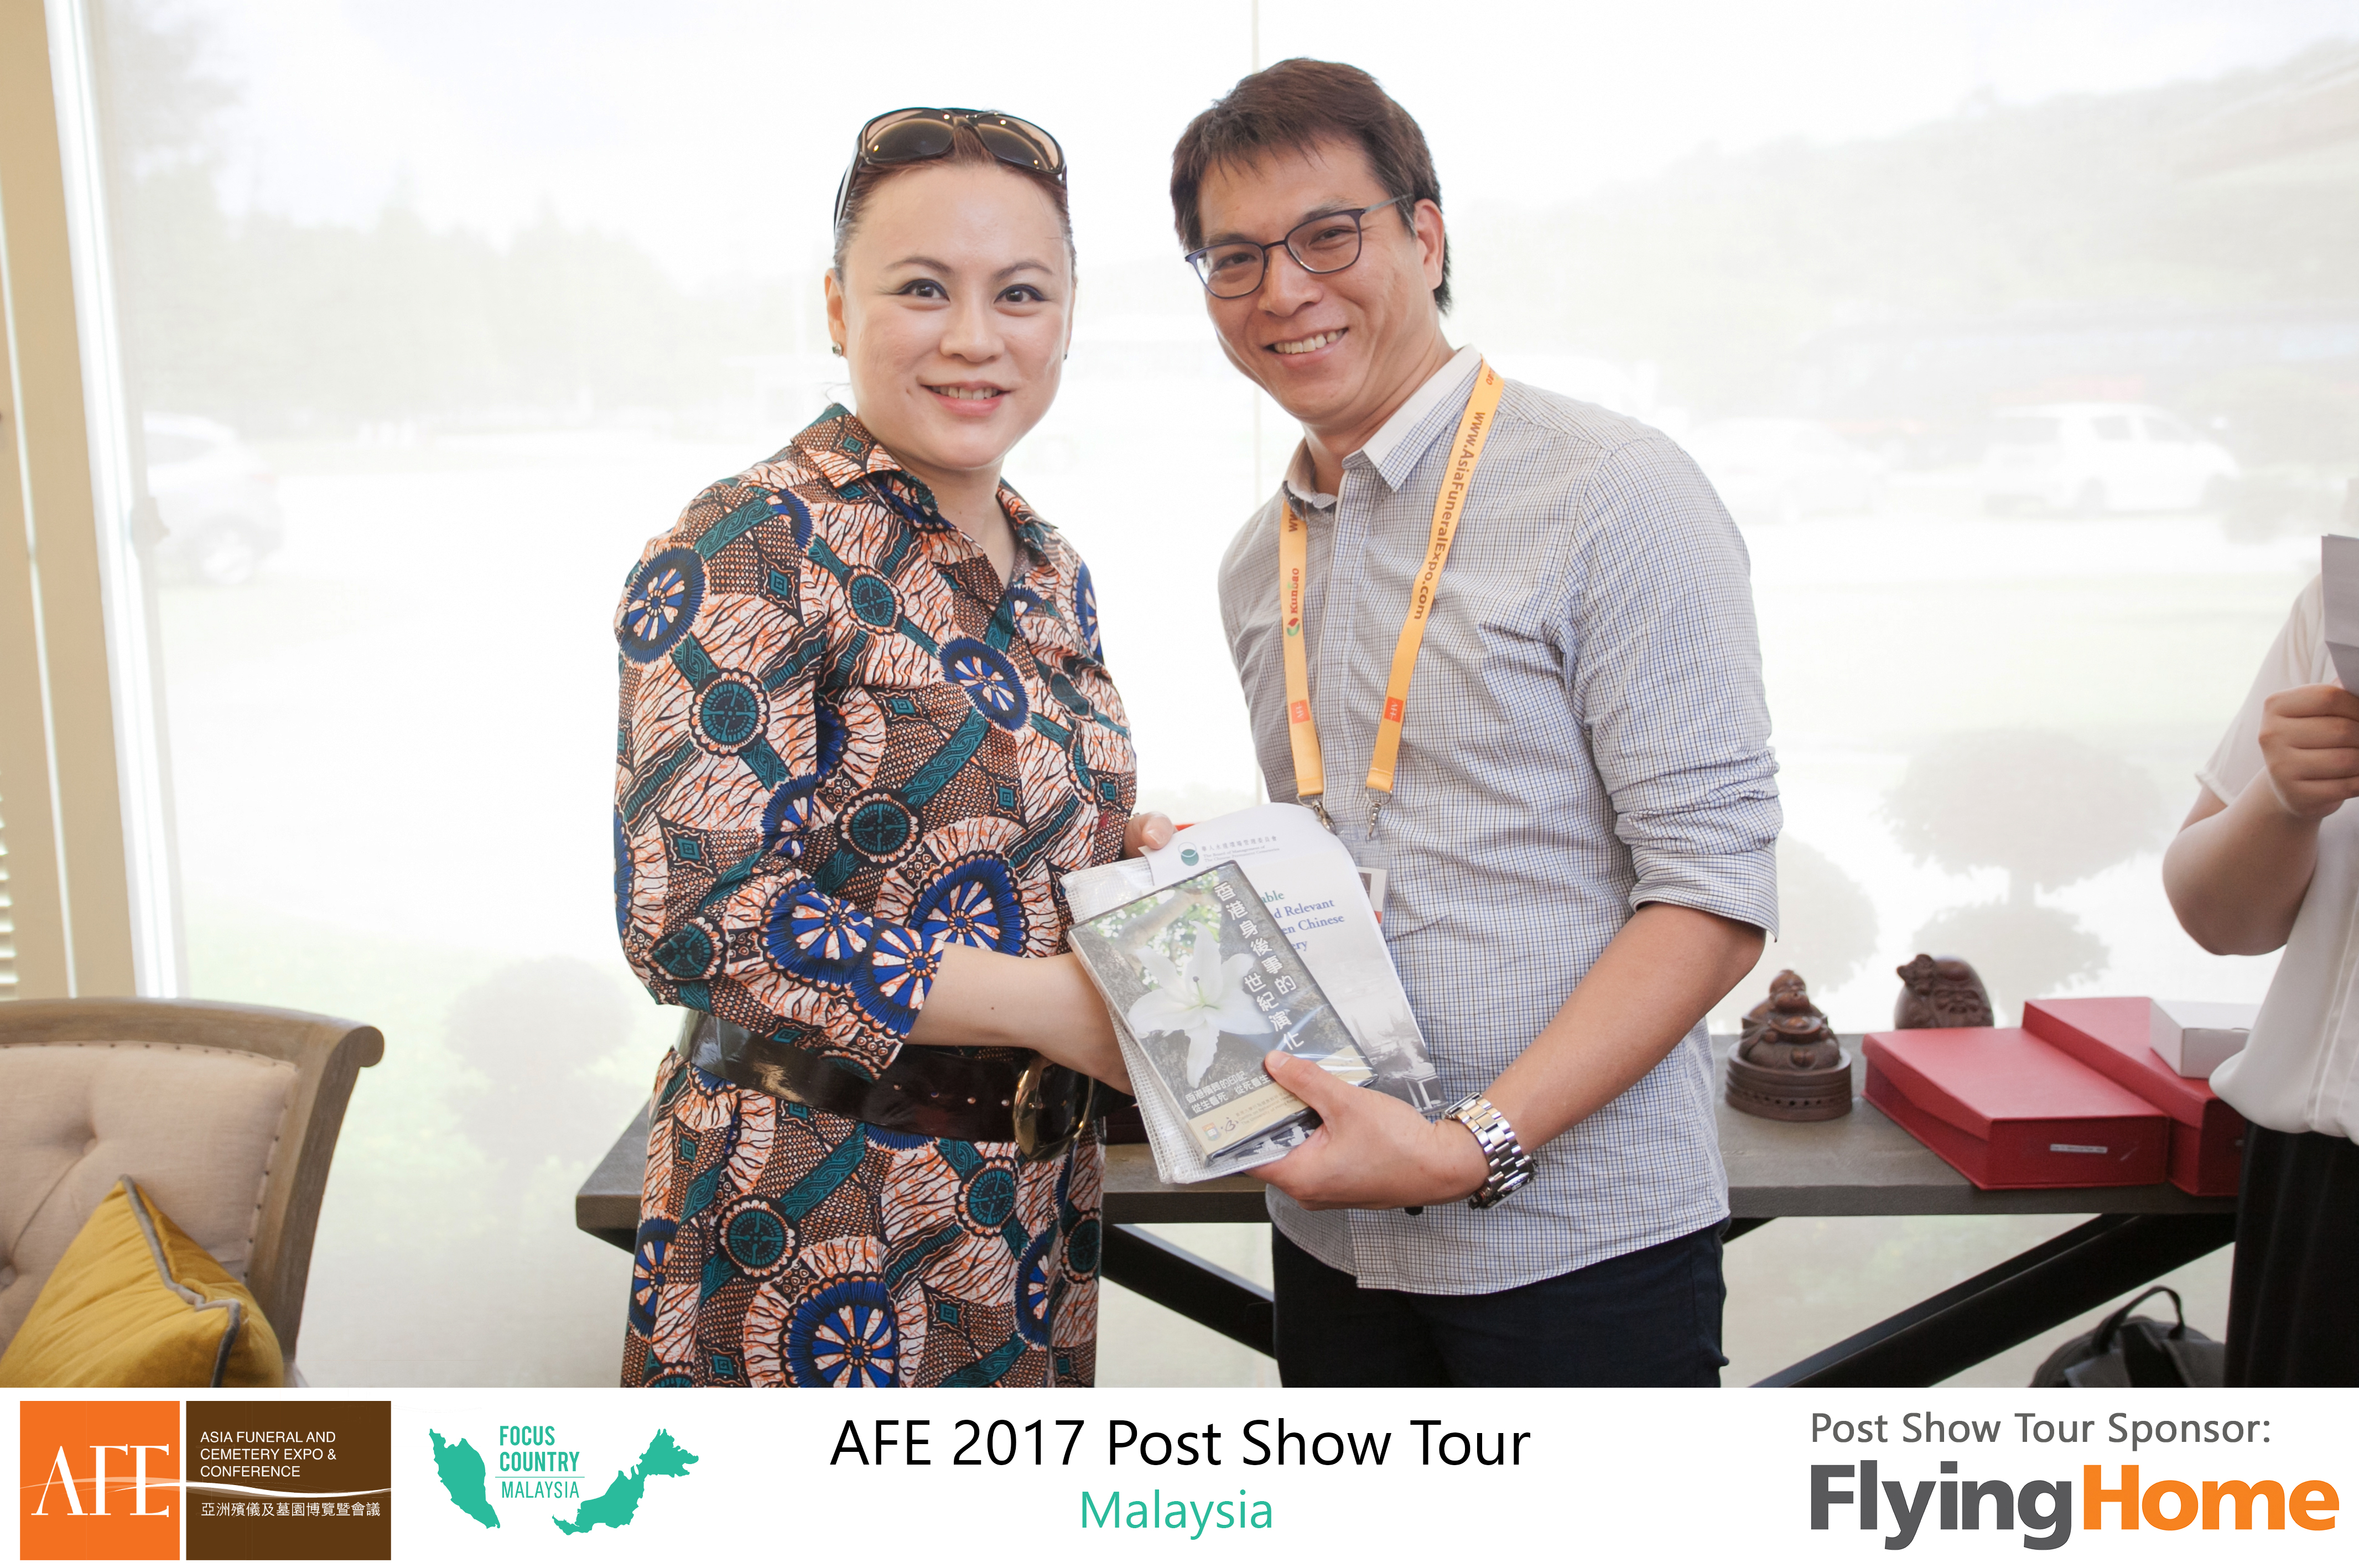 AFE Post Show Tour 2017 Day 3 -21